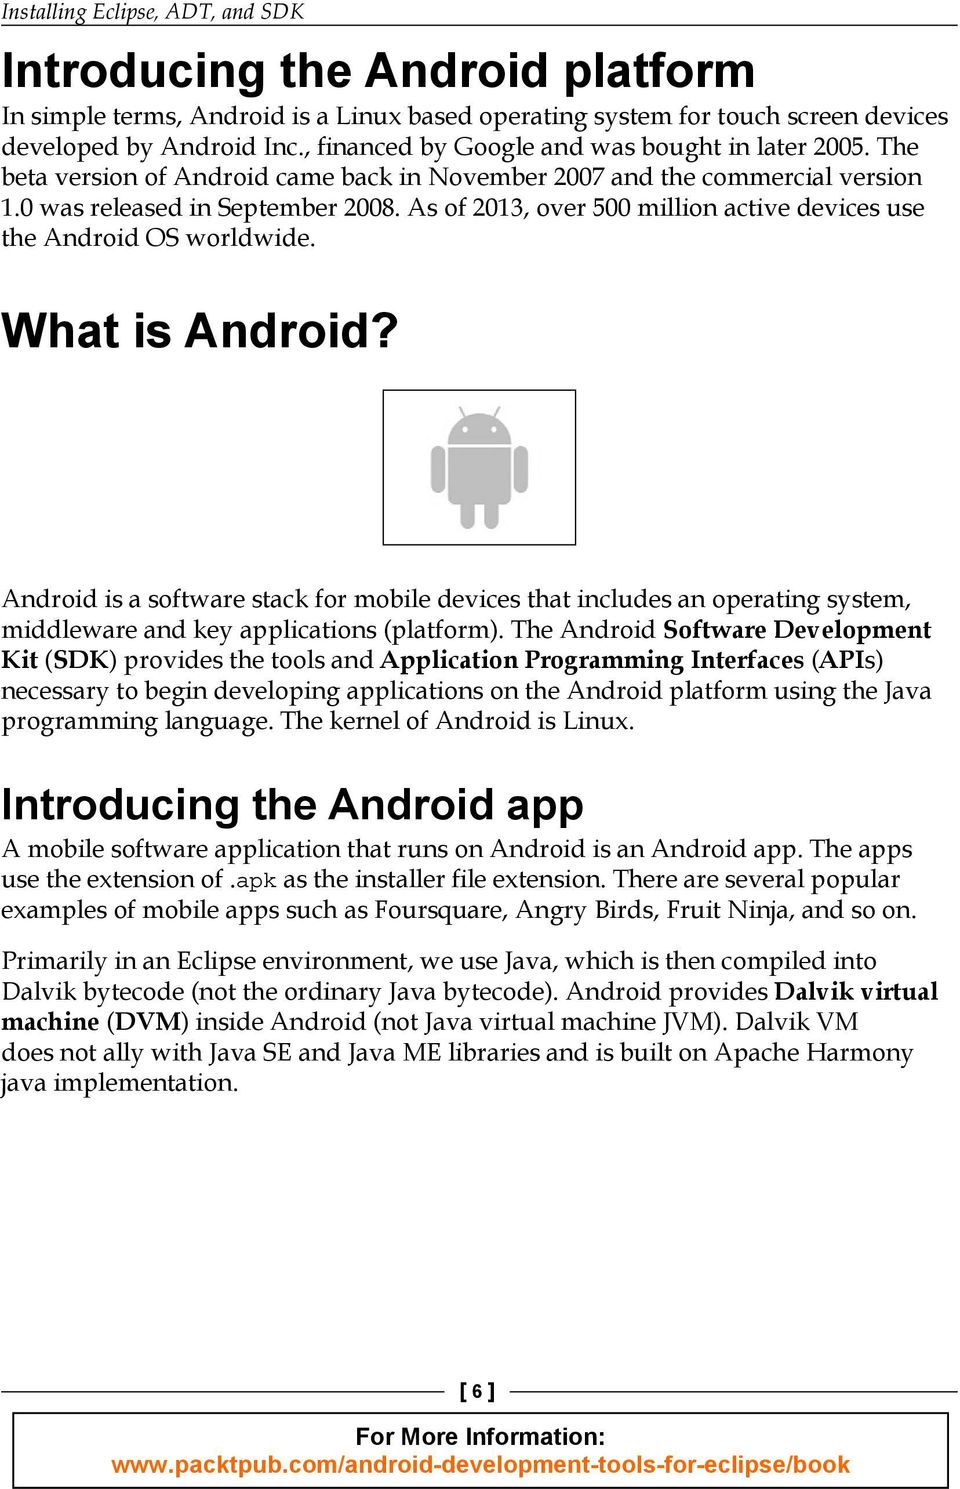 Android Development Tools for Eclipse - PDF